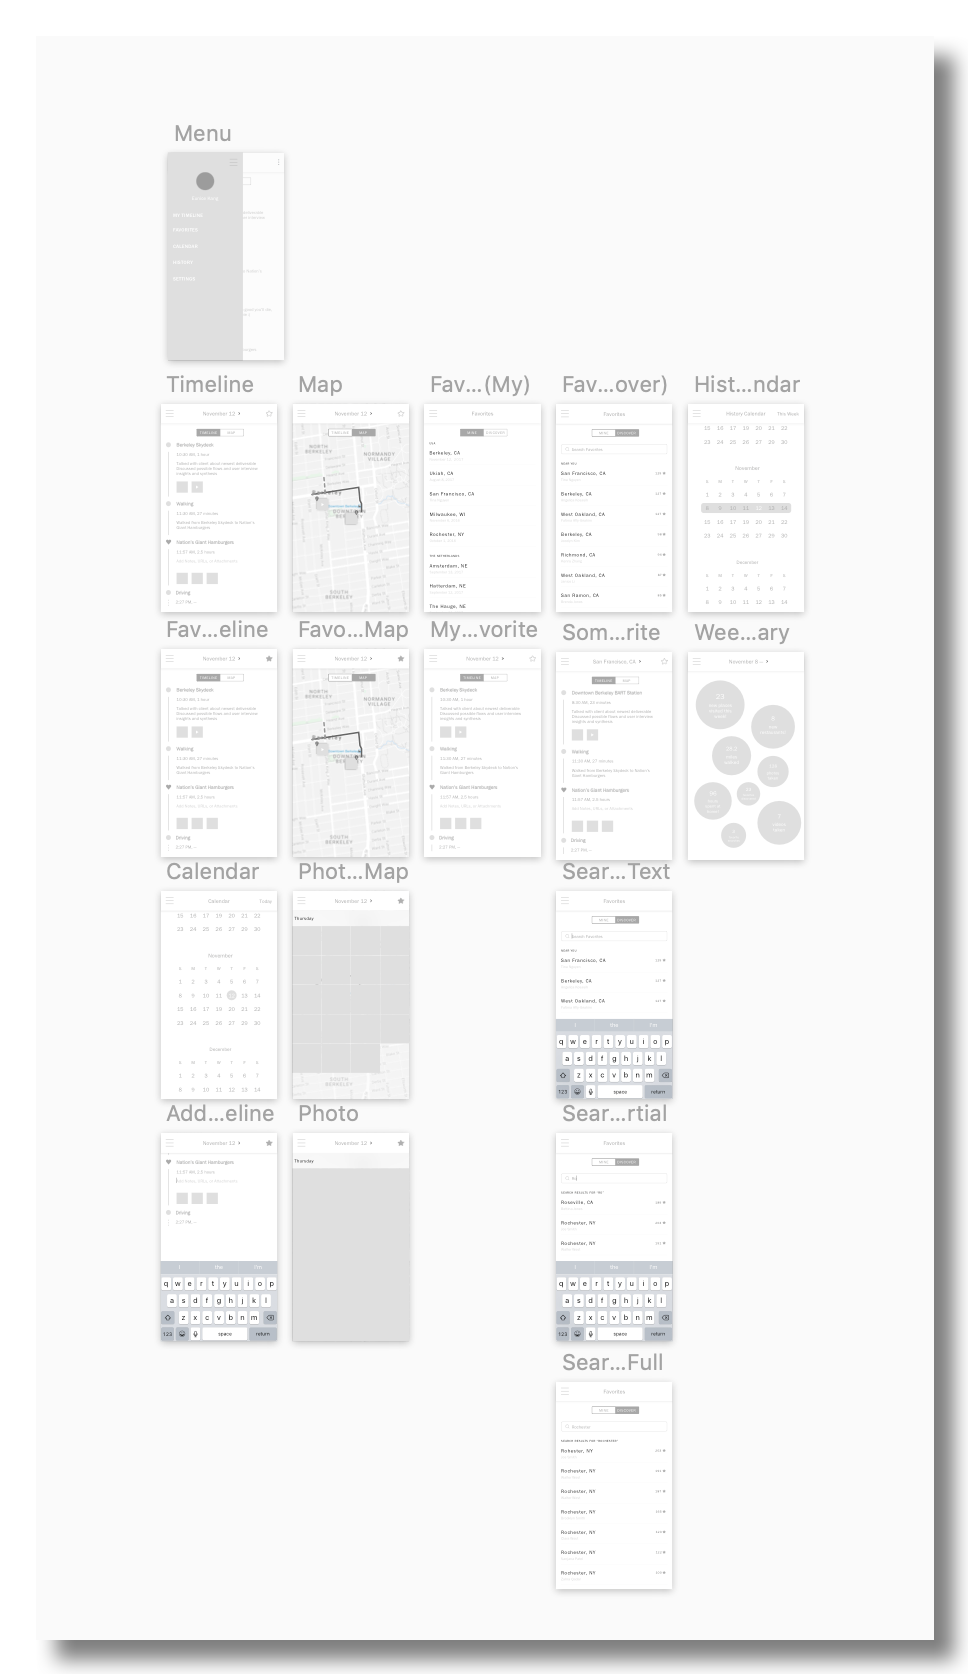 Sketches translated to medium-fidelity designs.